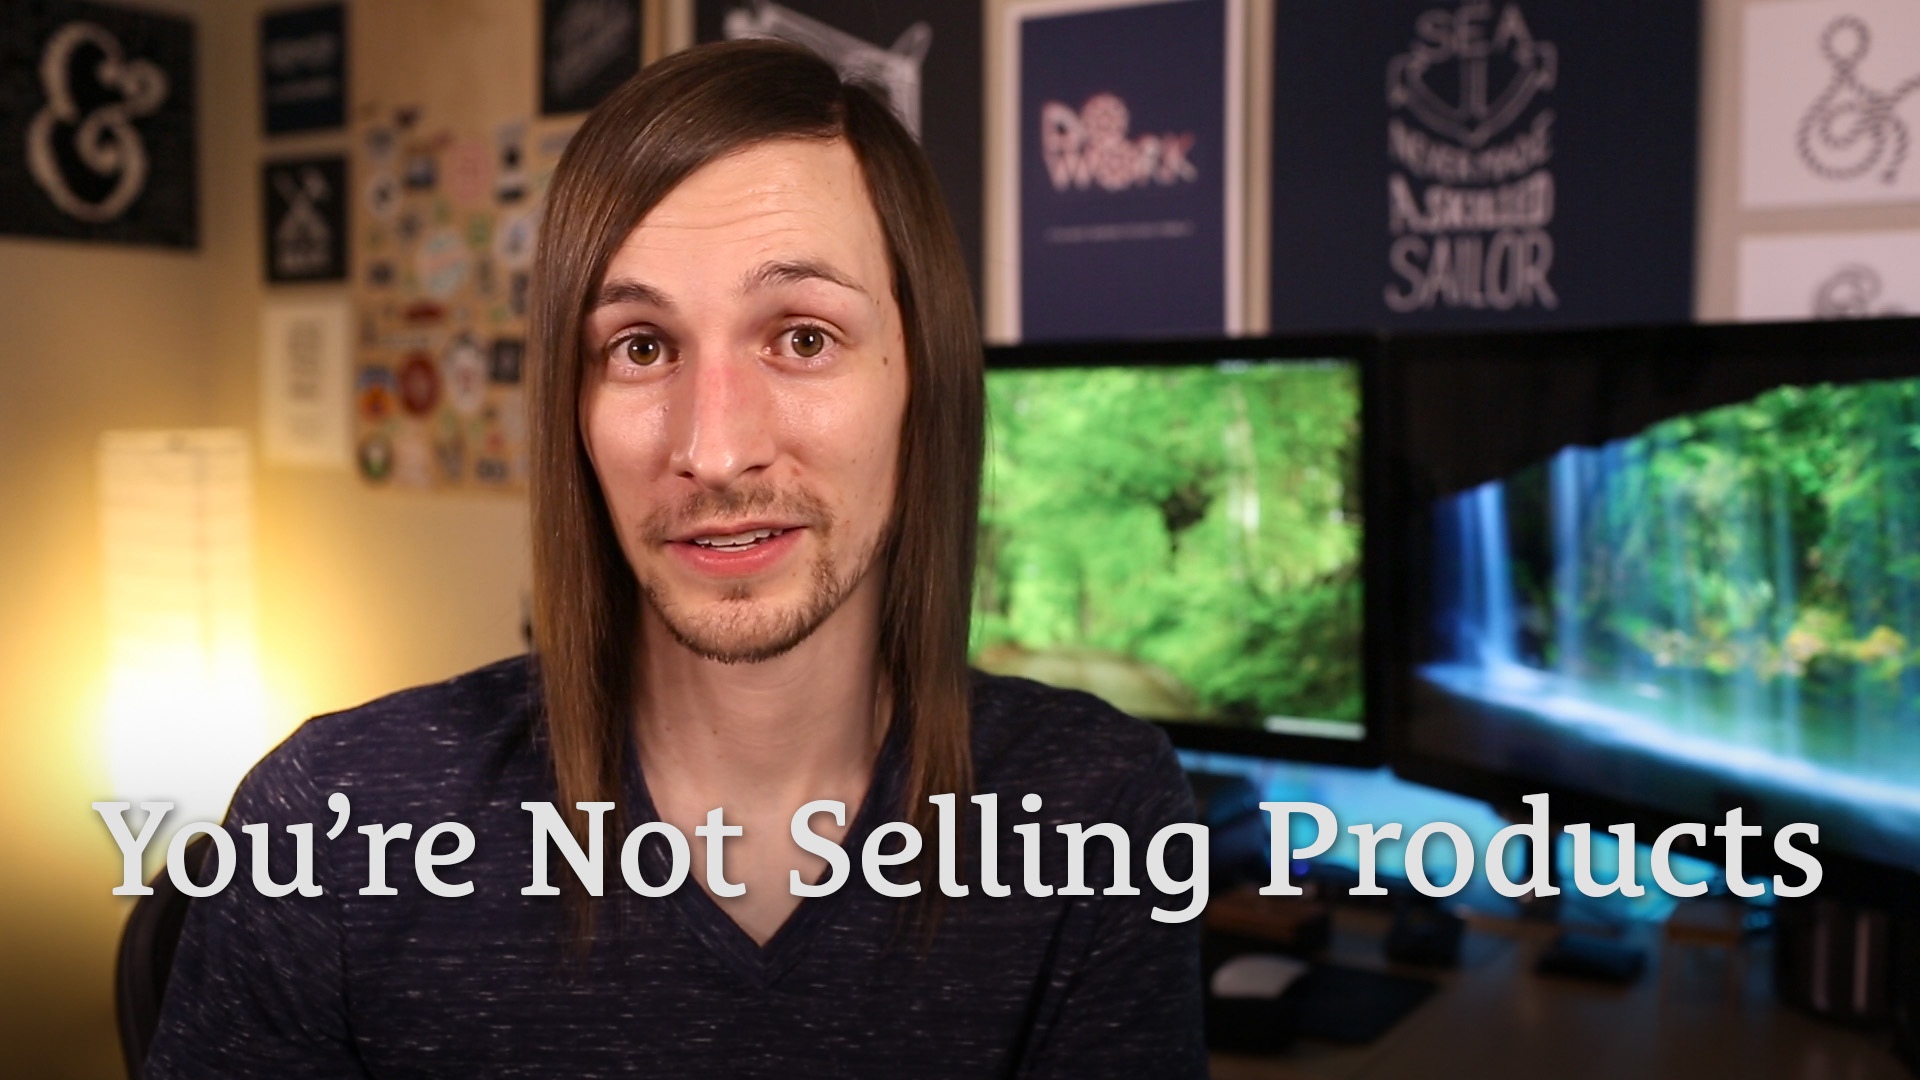 You're Not Selling Products to People, You're Selling a Better Version of Themselves